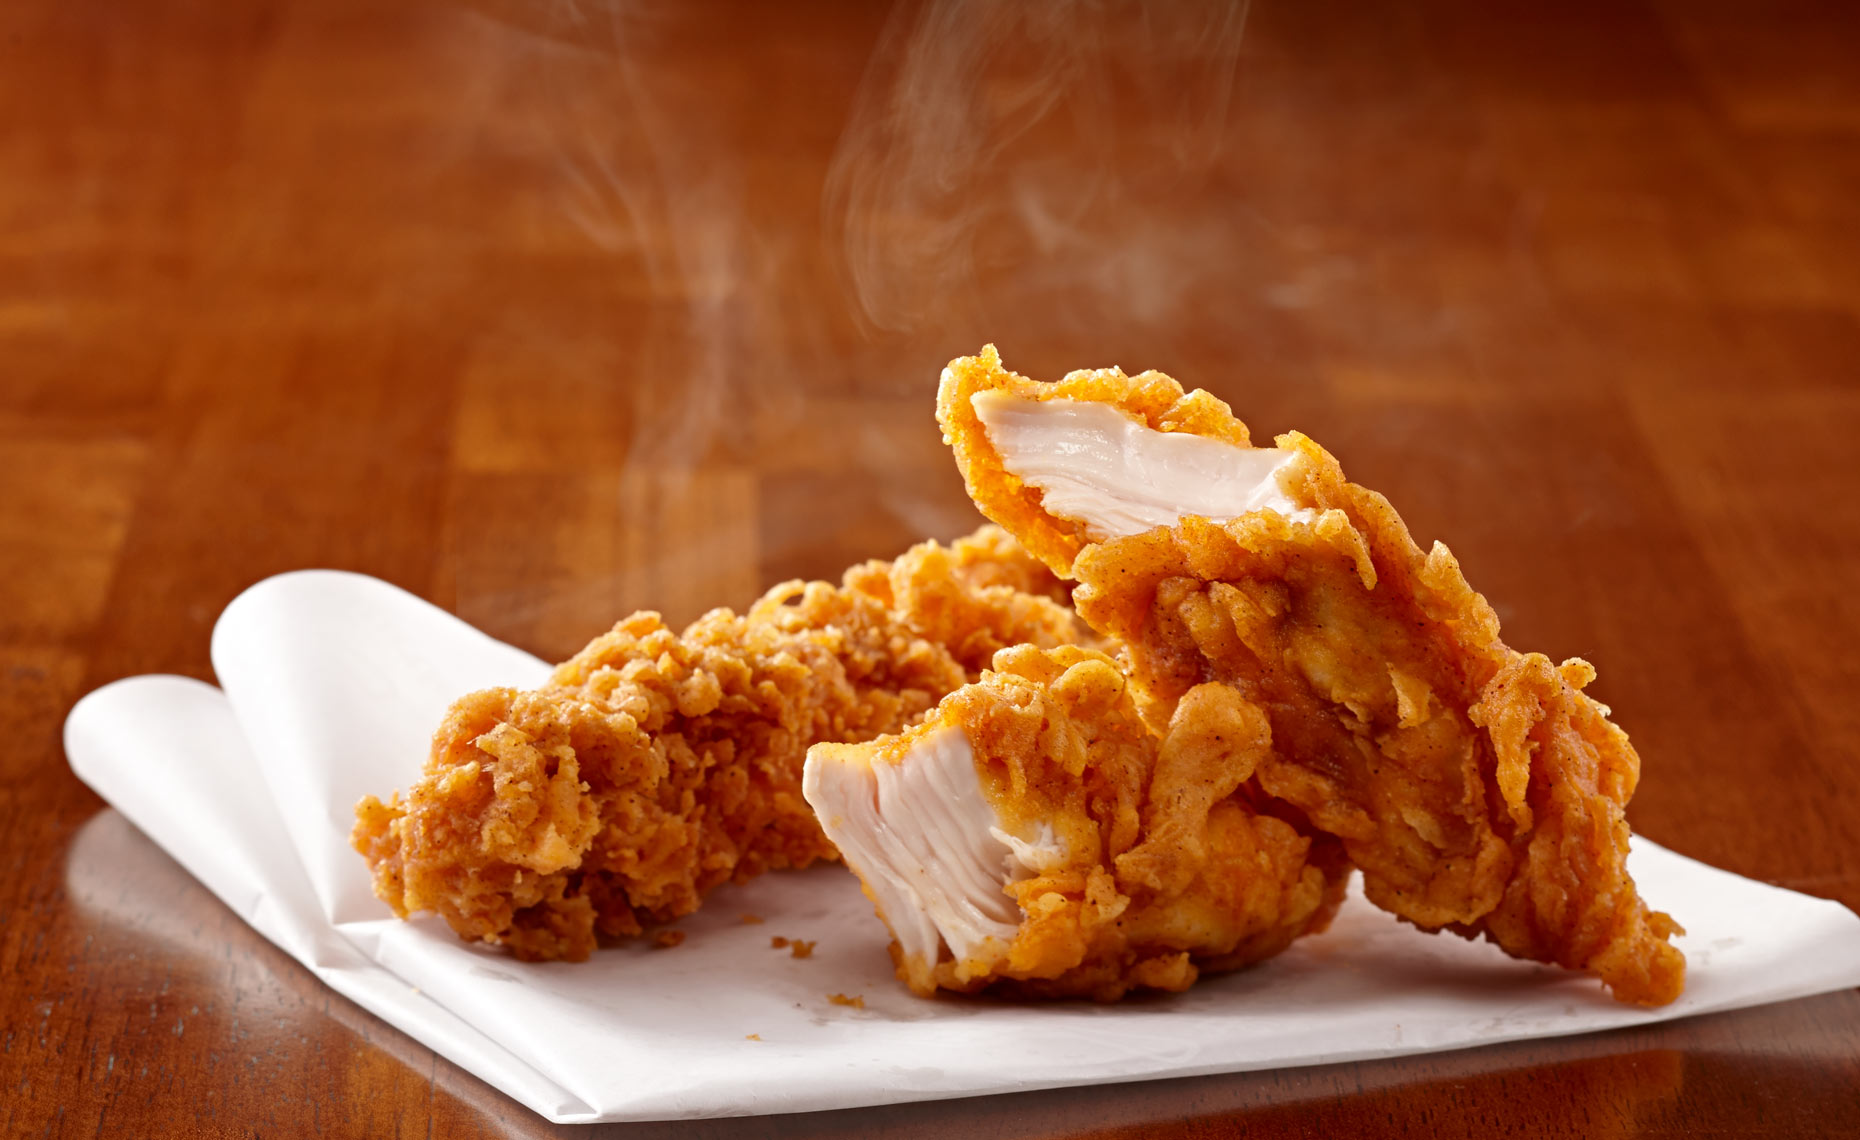 meat-photographers-chicken-tender-fried-14